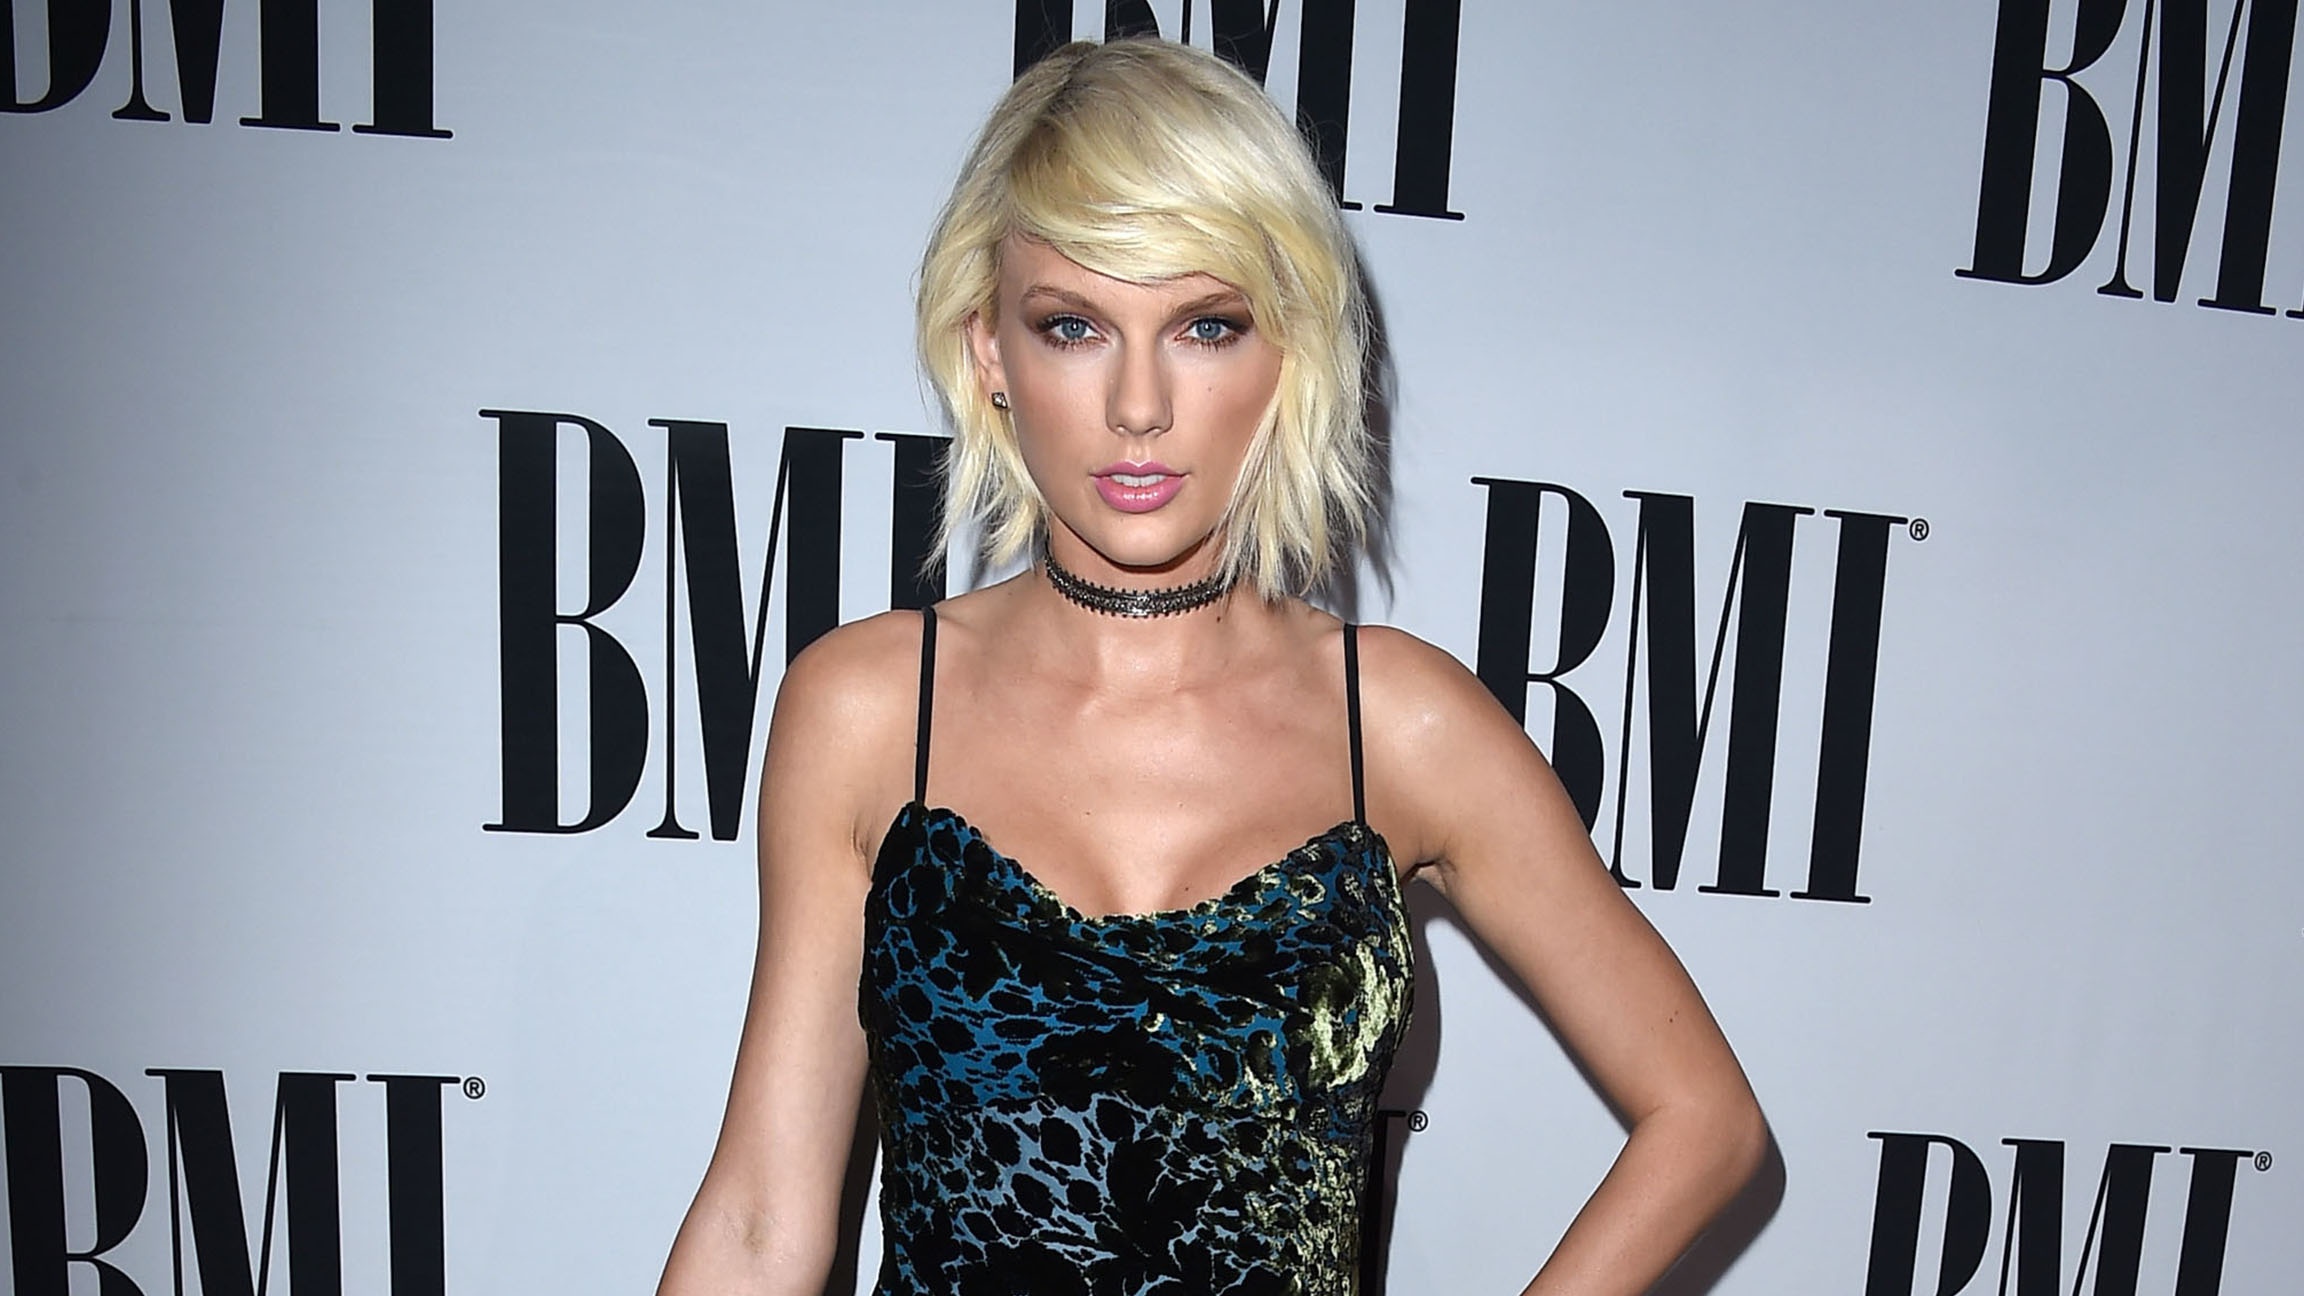 Taylor Swift Opens Up About Living with an Eating Disorder in Her New Documentary